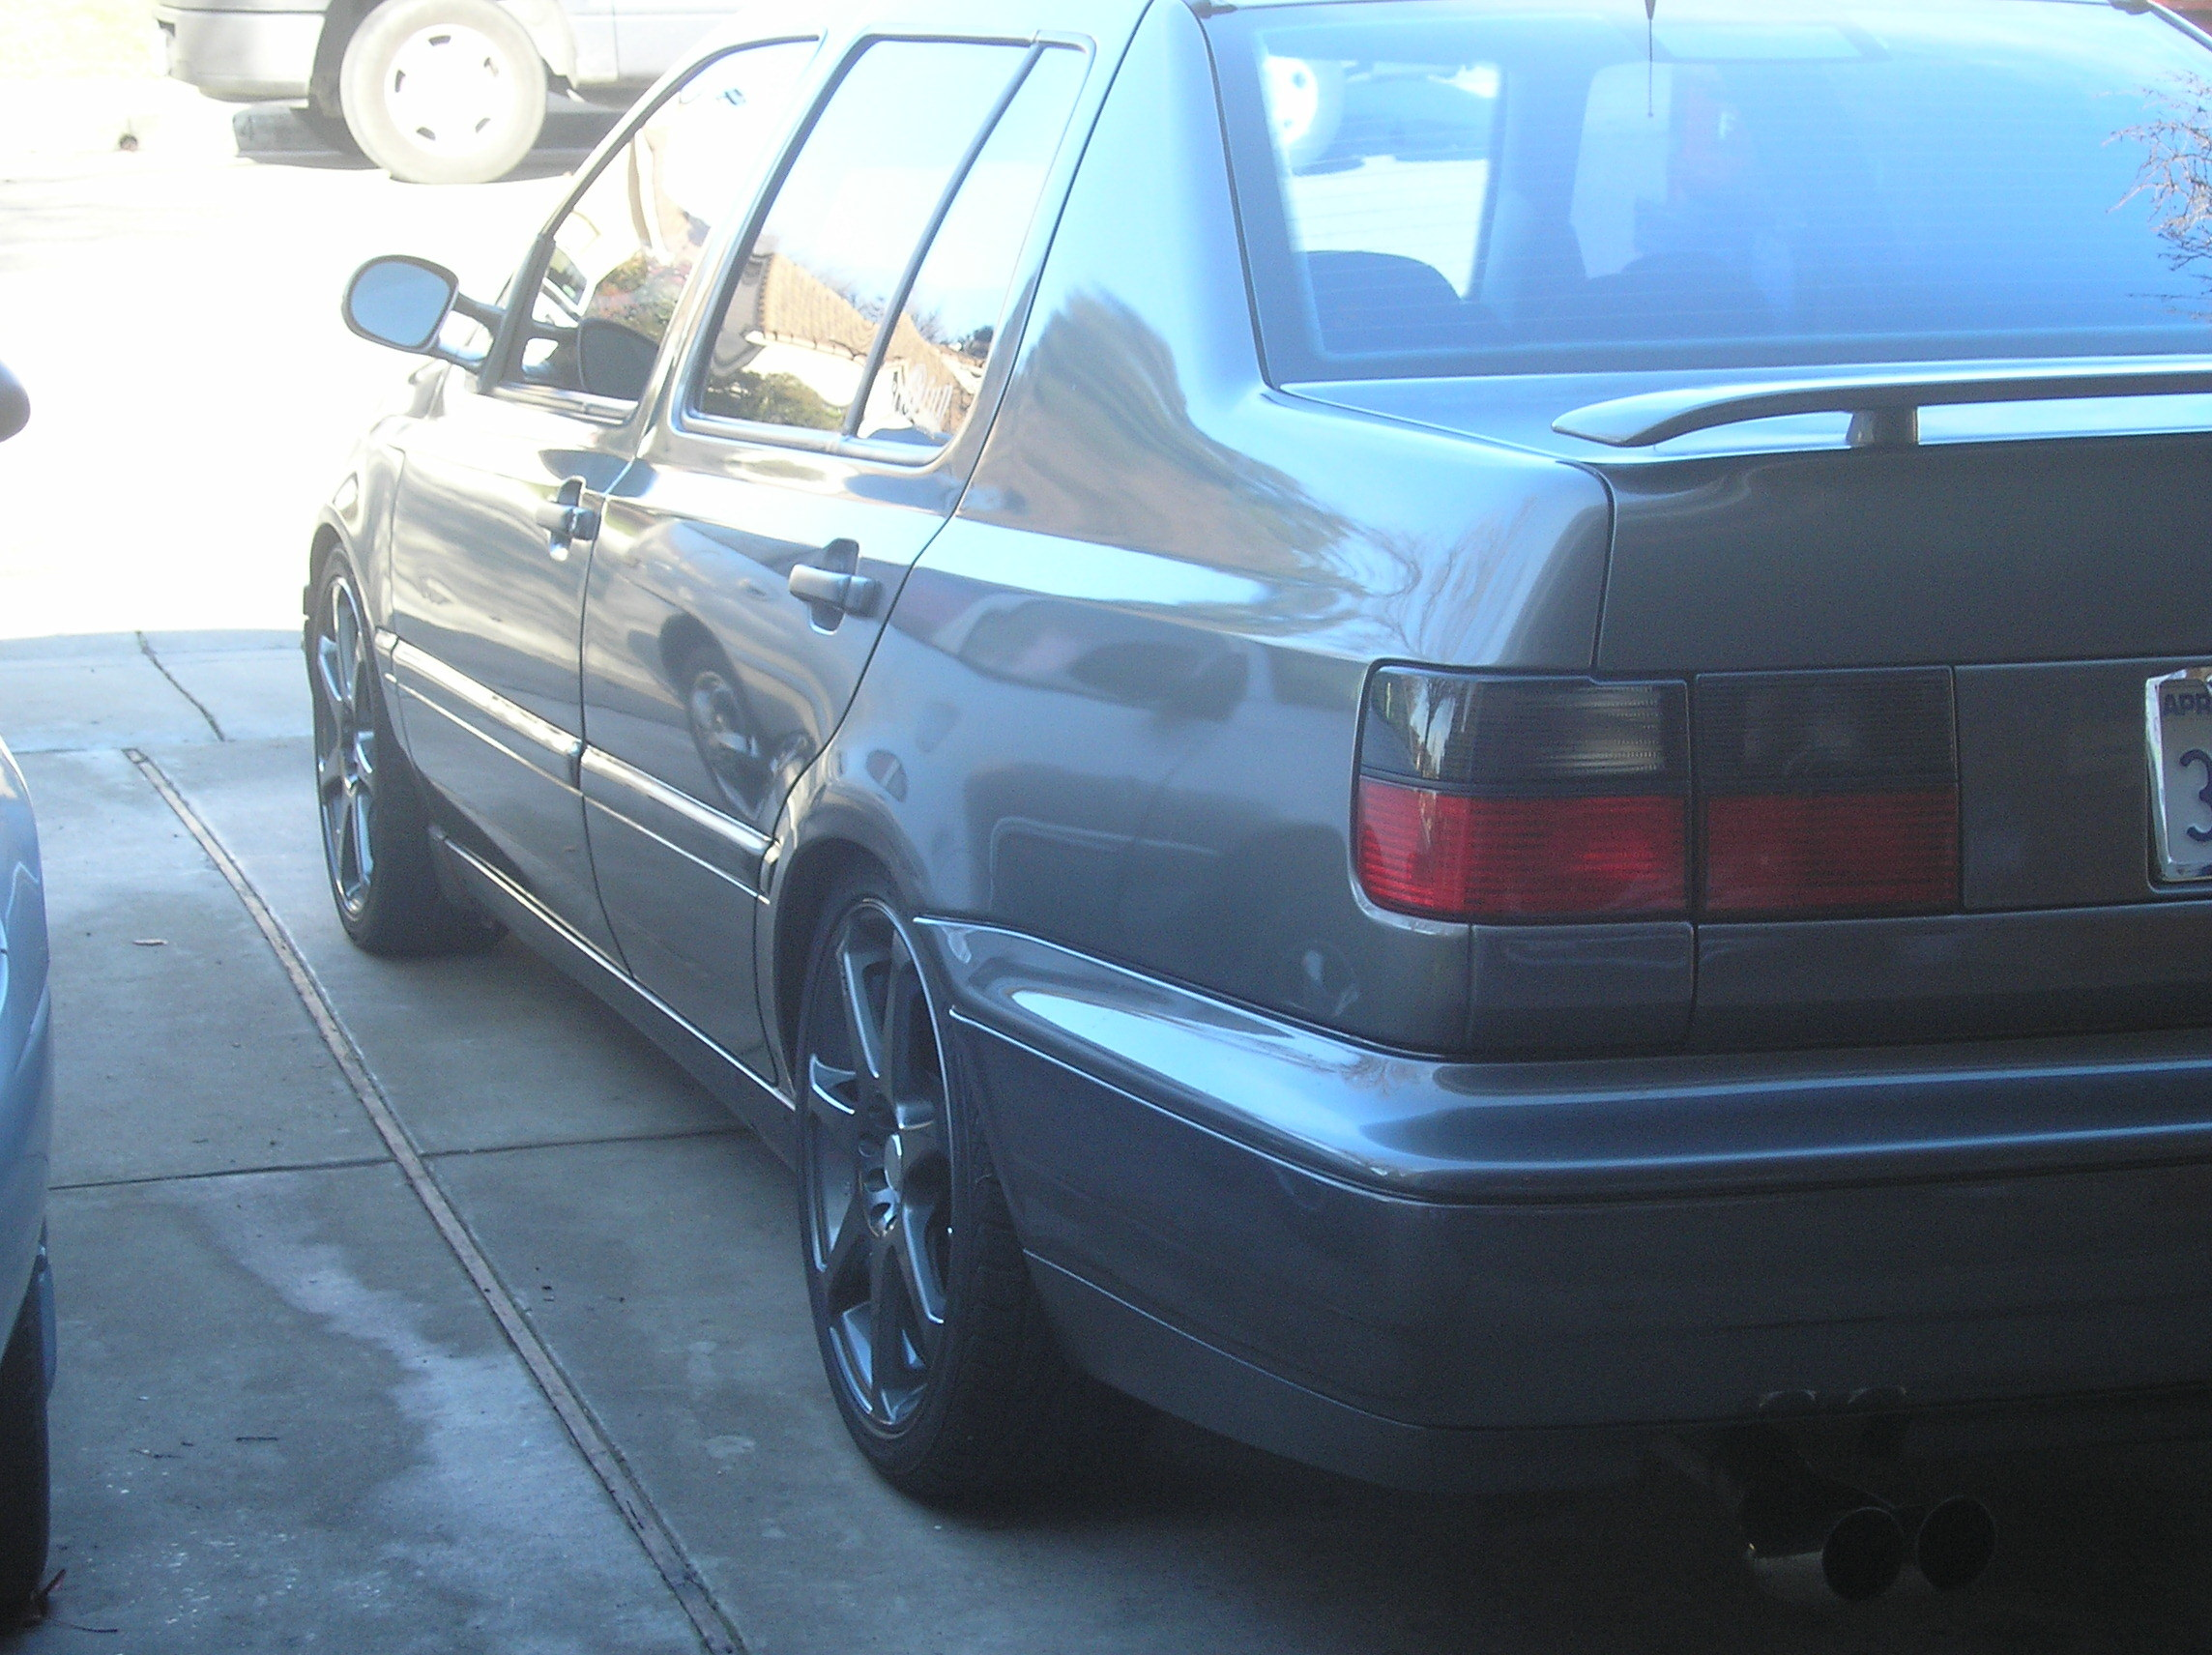 Another j4ftuner 1997 Volkswagen Jetta III post... - 12493852